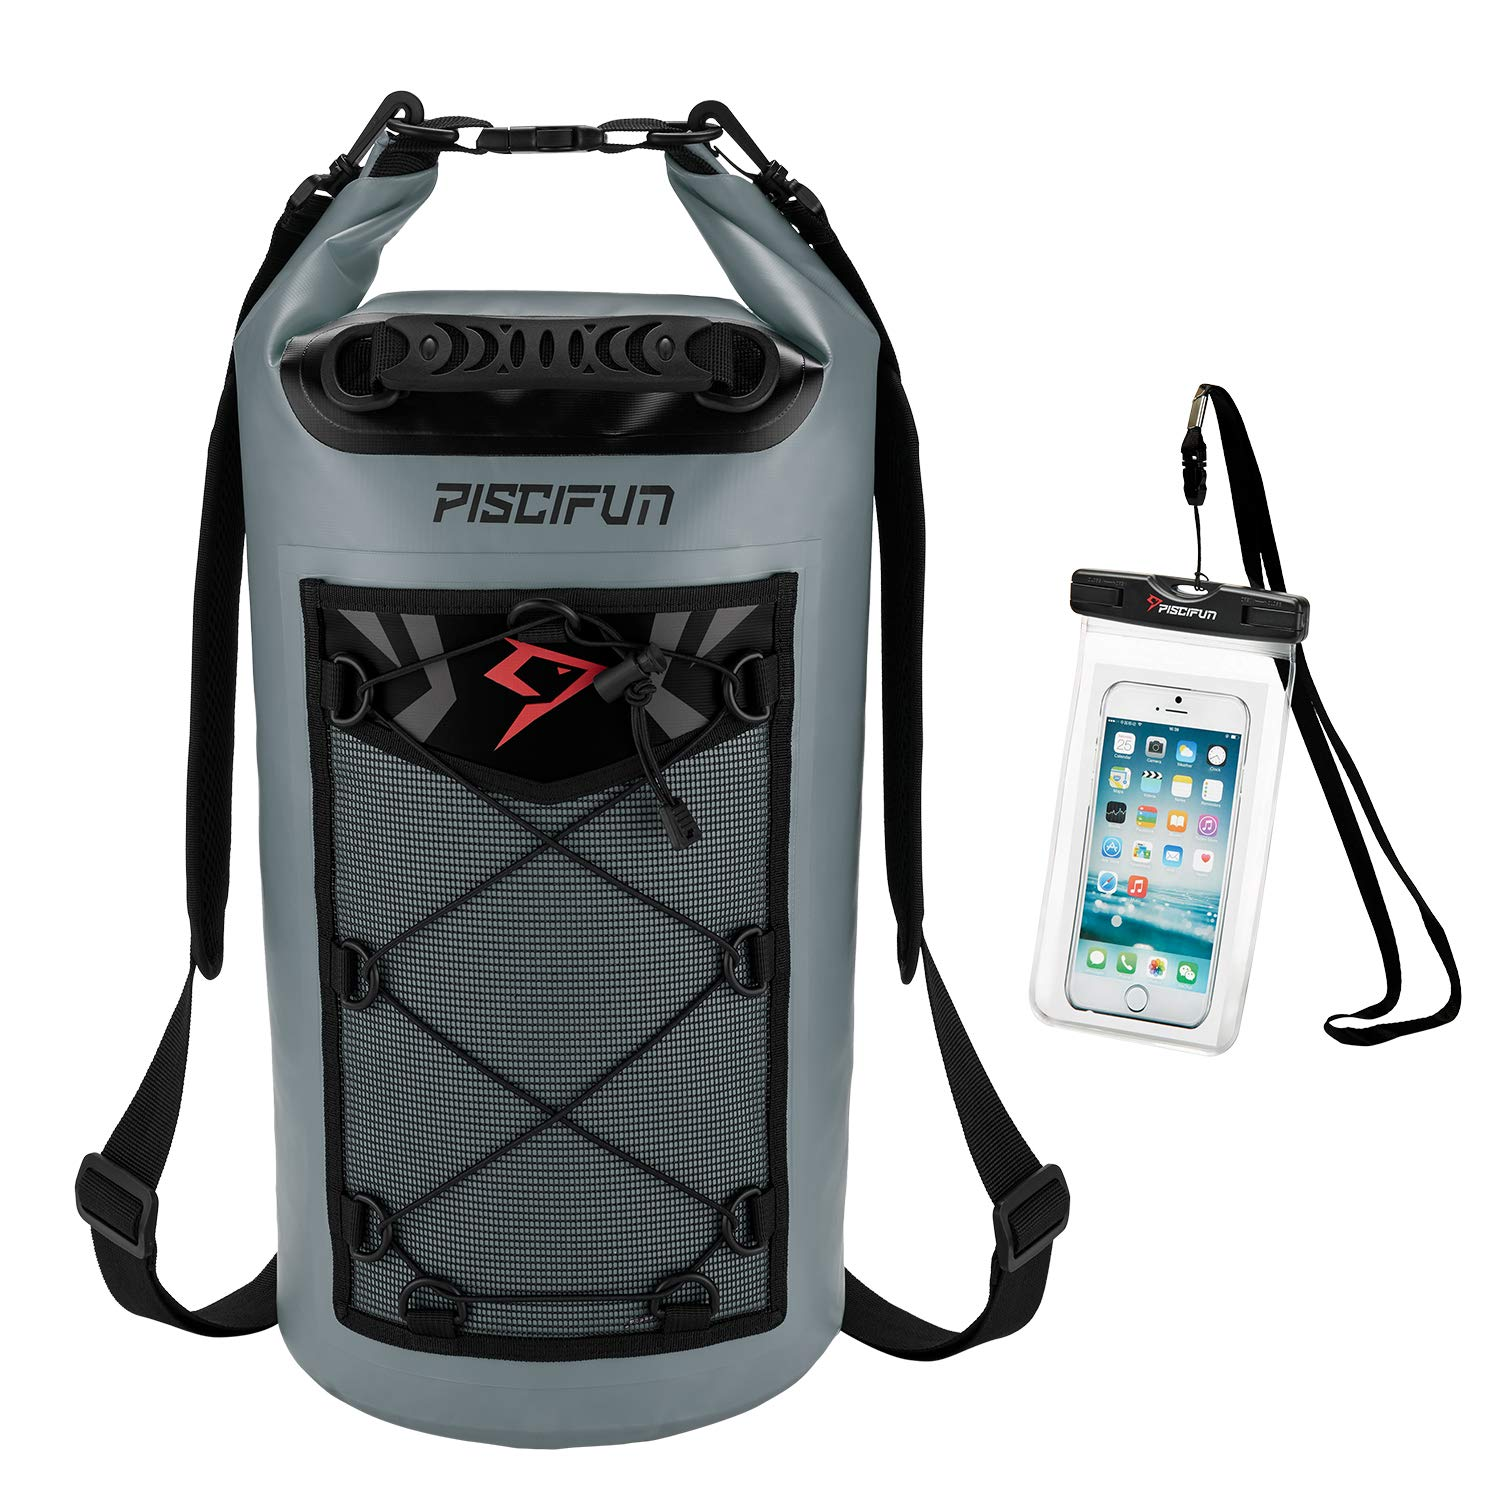 Piscifun Waterproof Dry Bag Backpack Floating Dry Backpack for Water Sports - Fishing, Boating, Kayaking, Surfing, Rafting, Camping Gifts for Men and Women Free Waterproof Phone Case 10L 20L 30L 40L